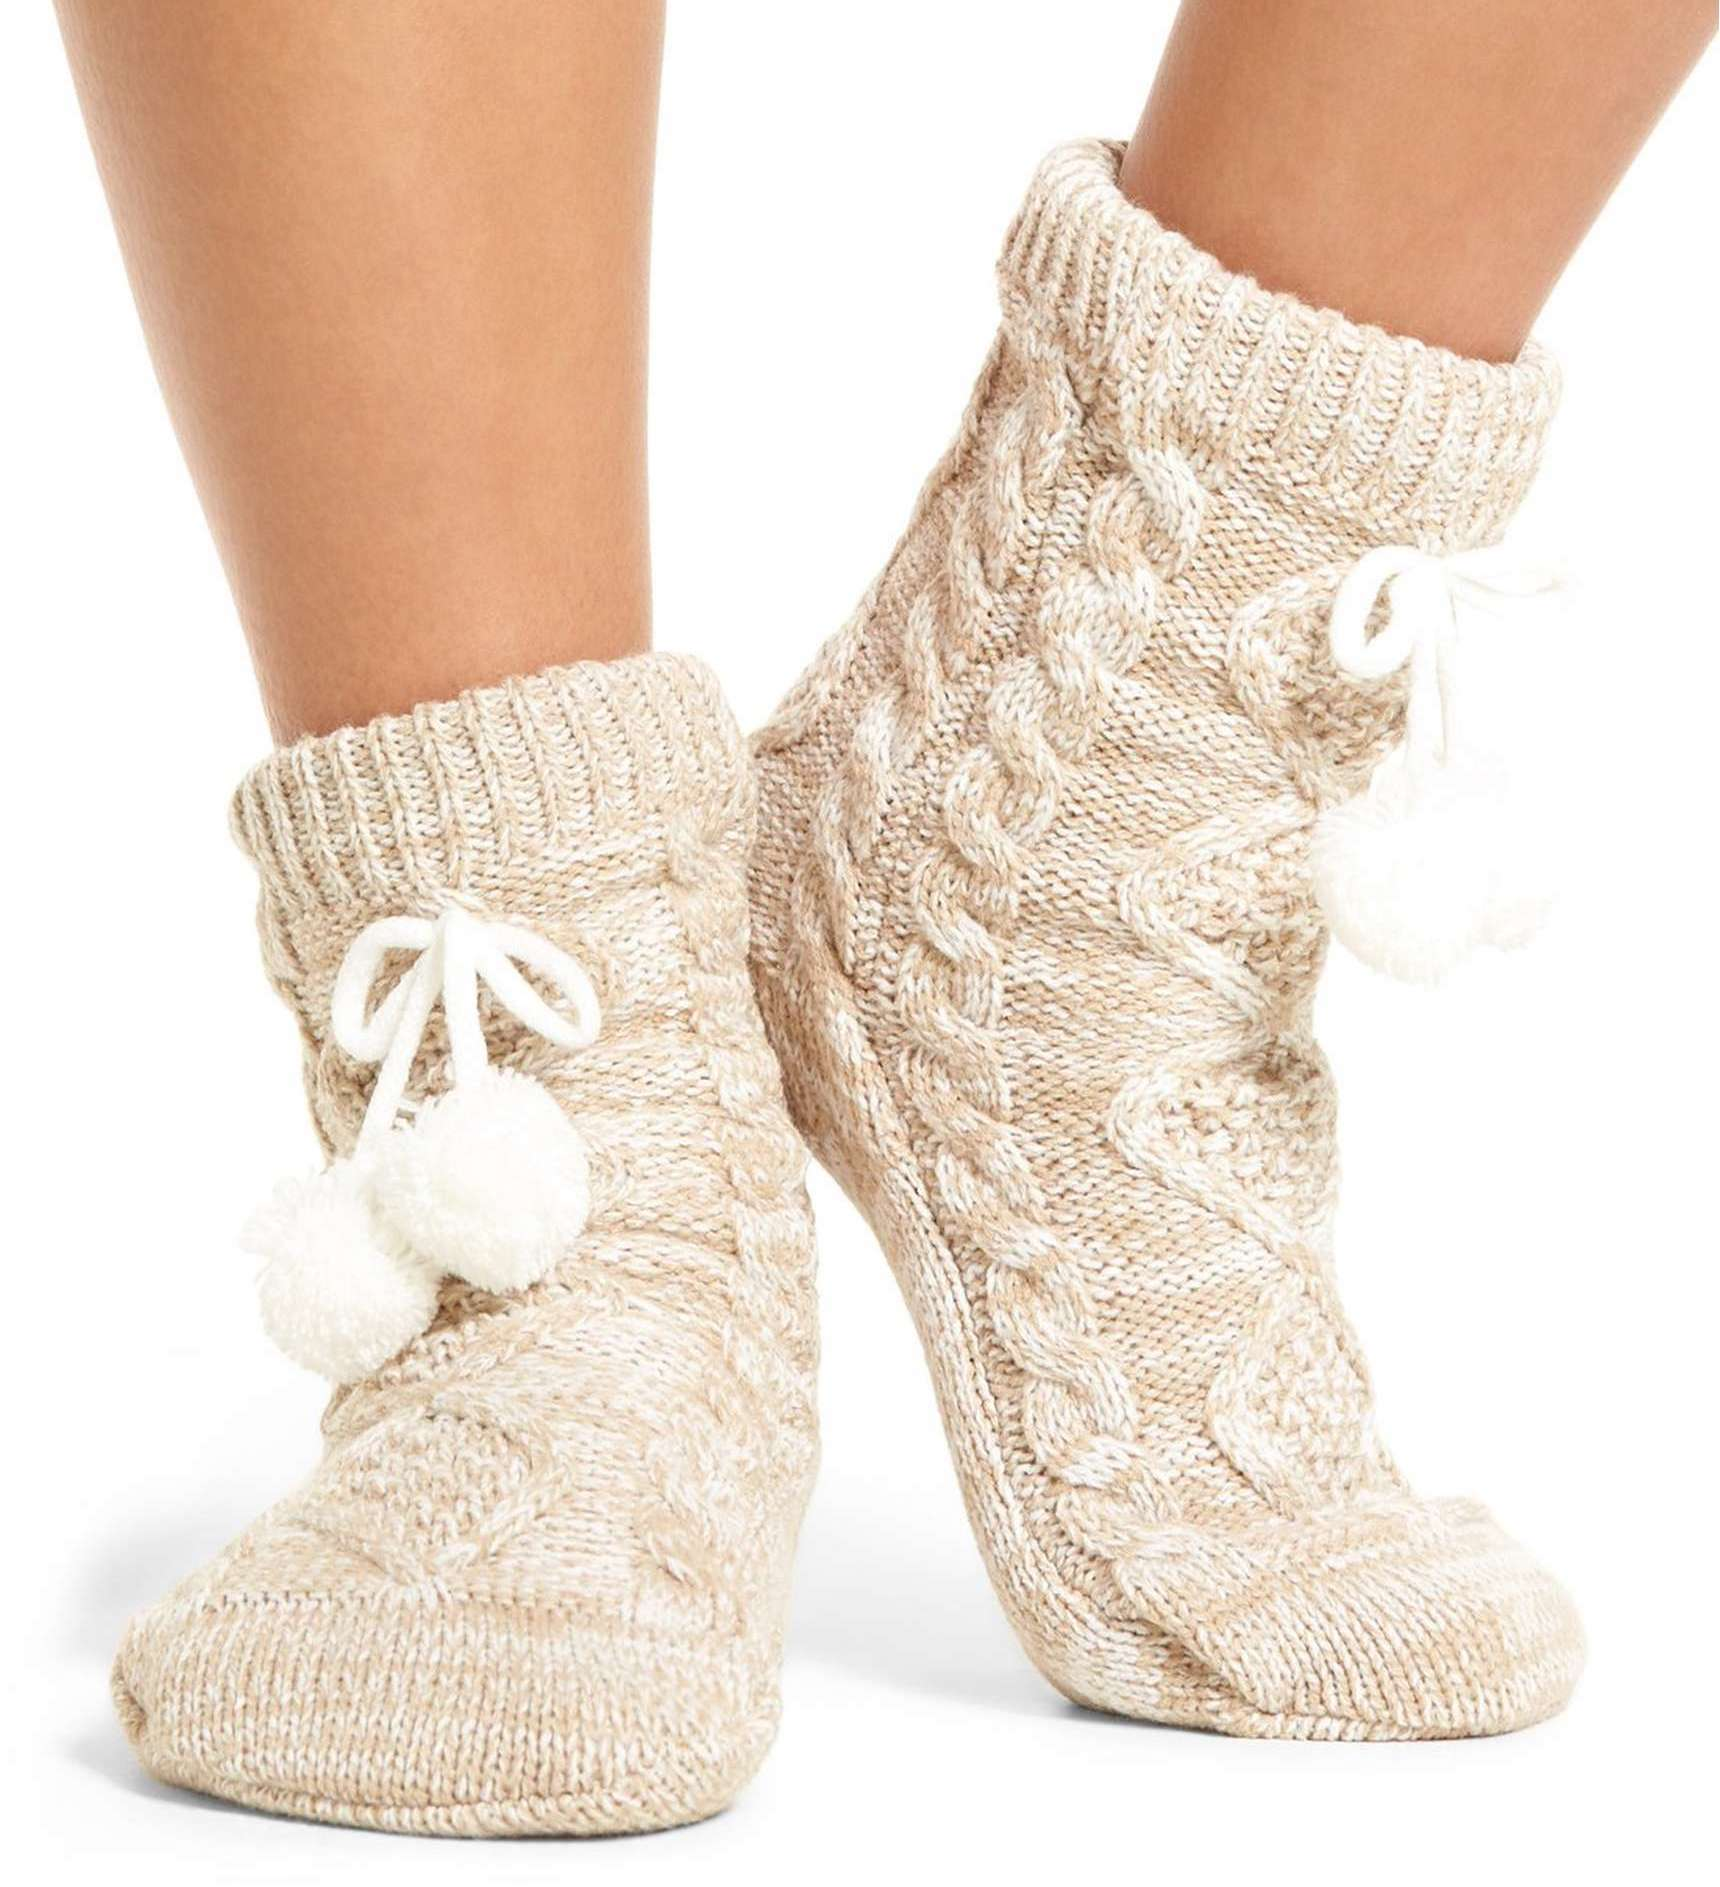 UGG fleece-lined socks: Self-care gifts